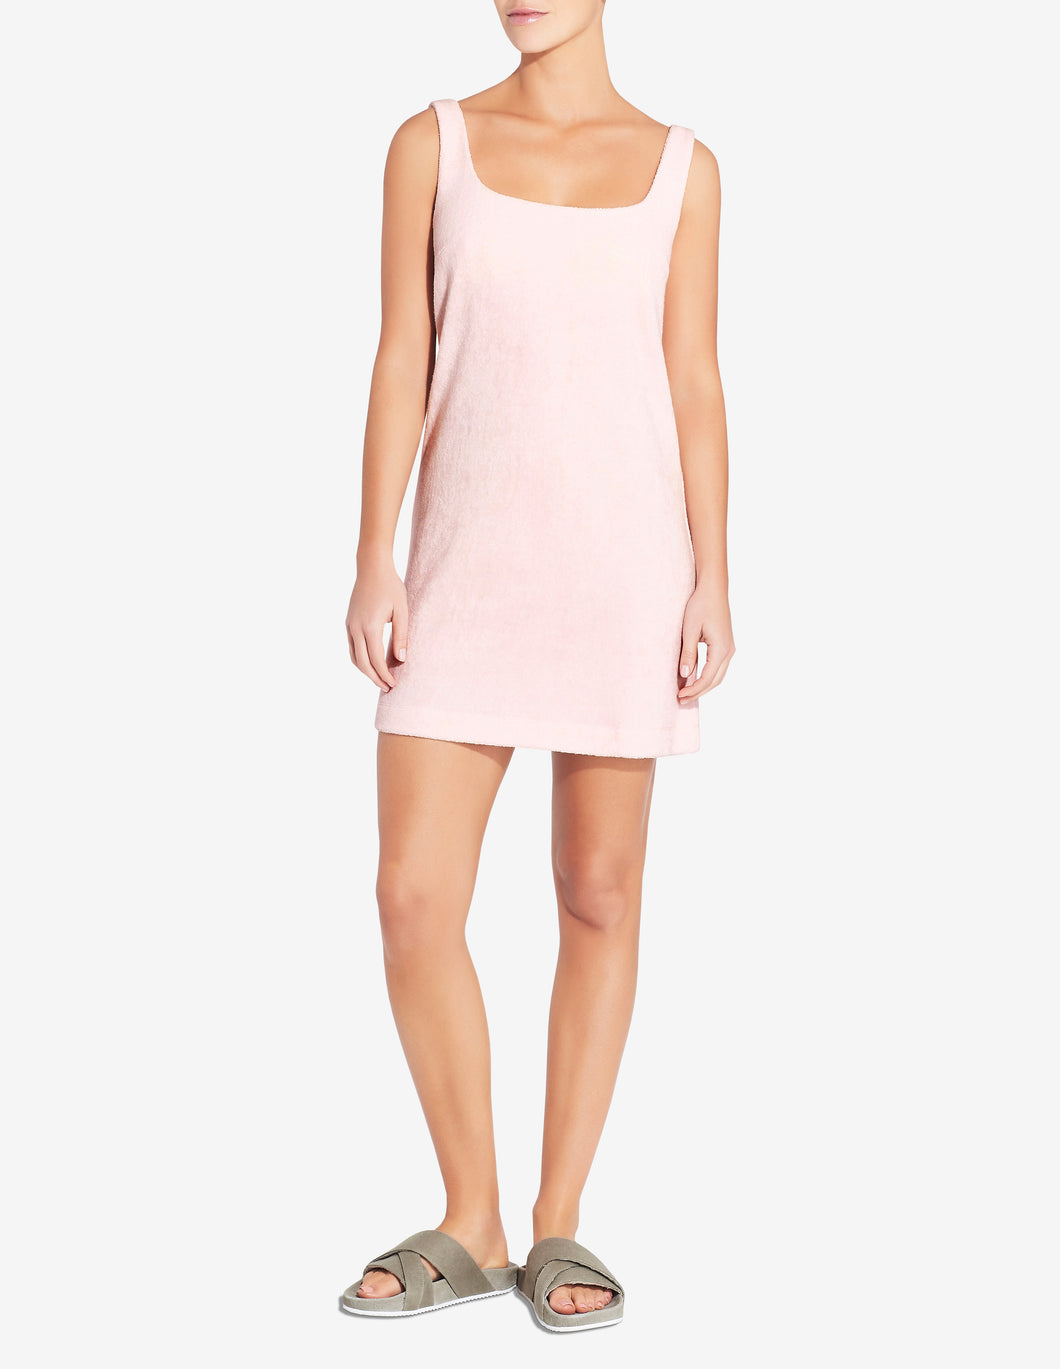 Terry Towel Mini Dress - Light Pink